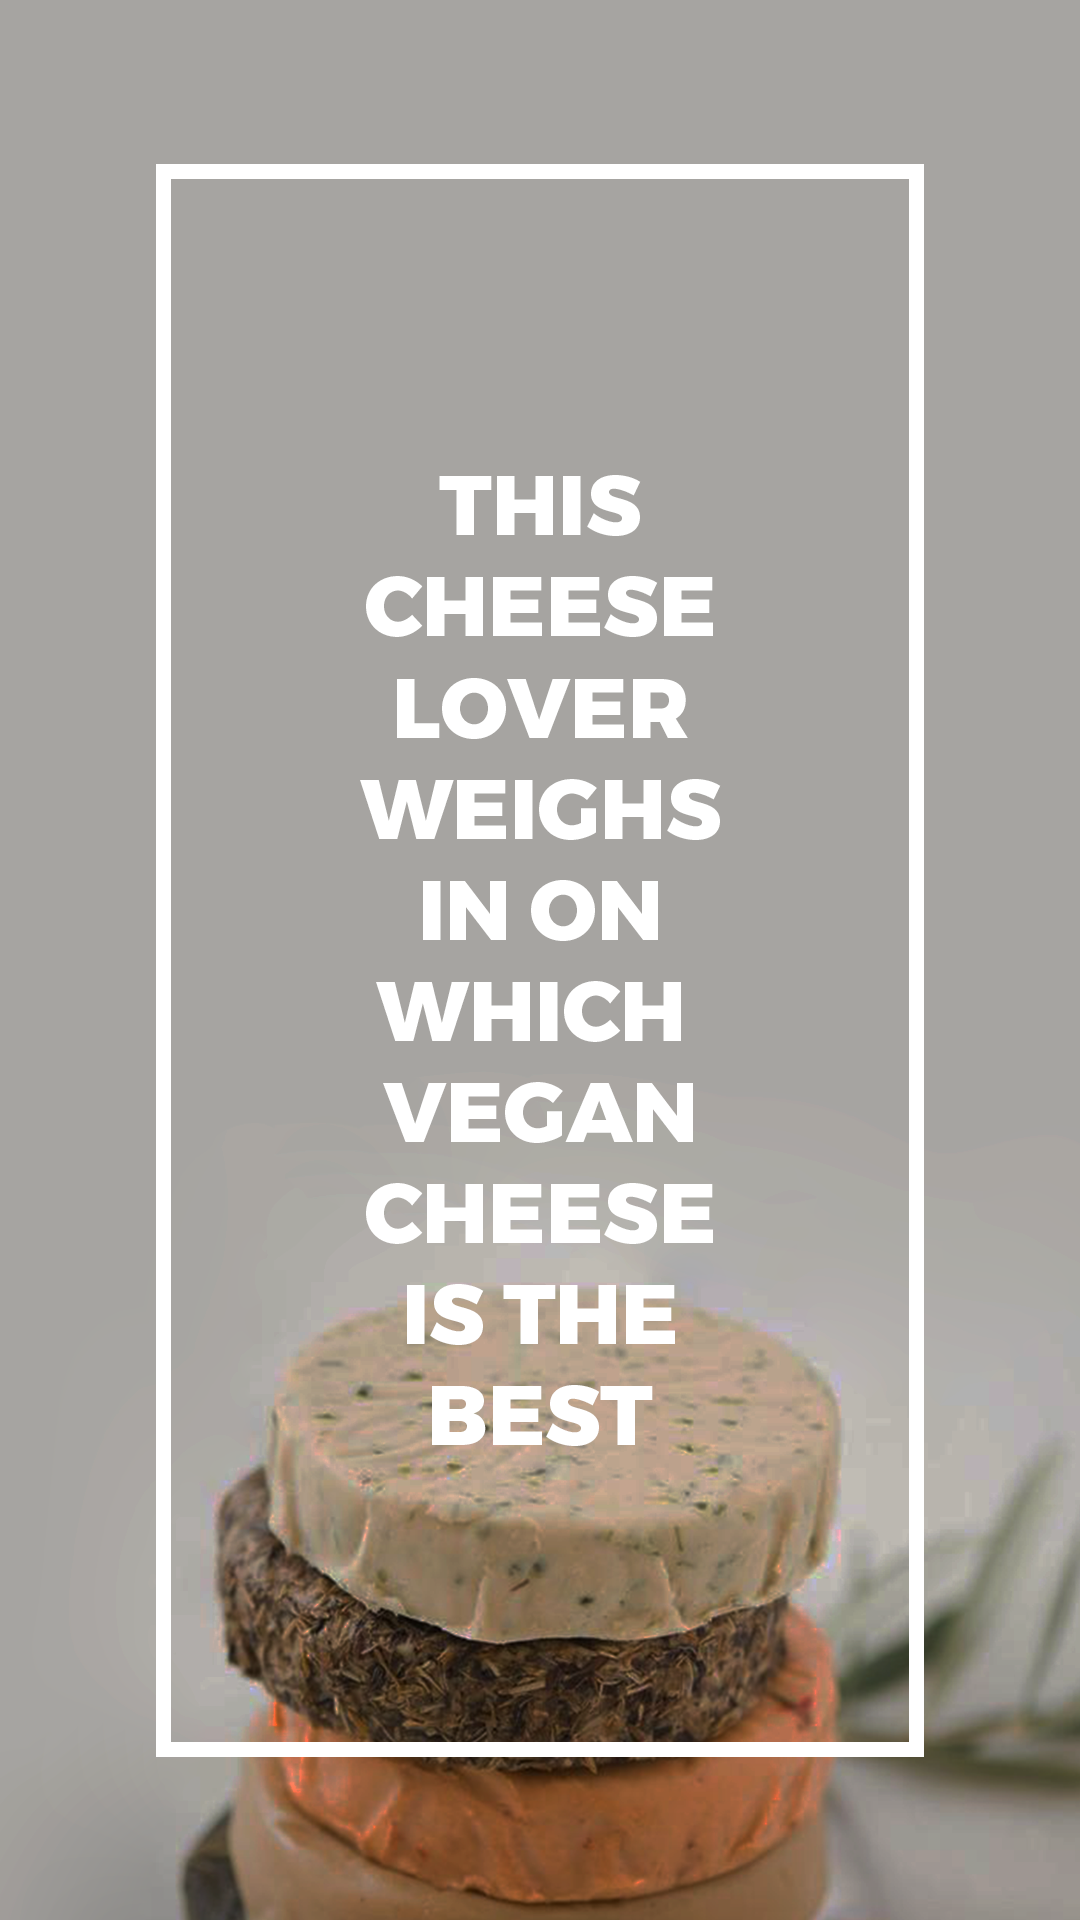 This Cheese Lover Weighs In on Which Vegan Cheese Is the Best